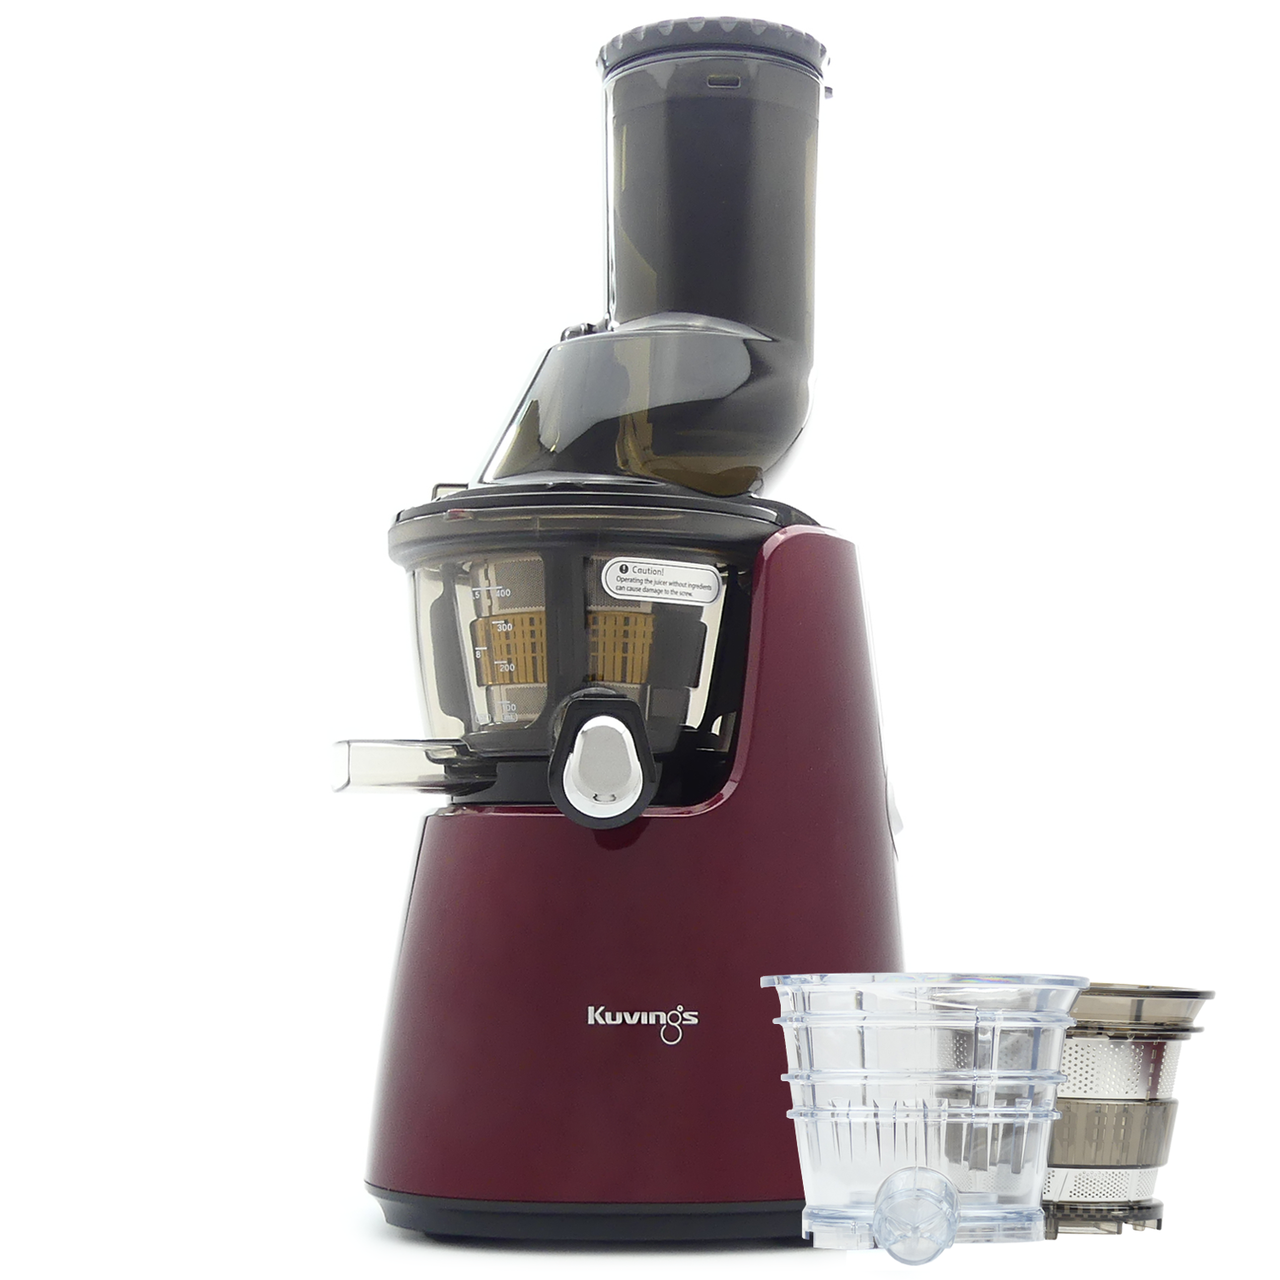 Kuvings C9500 Whole Fruit Juicer in Red with Accessory Pack